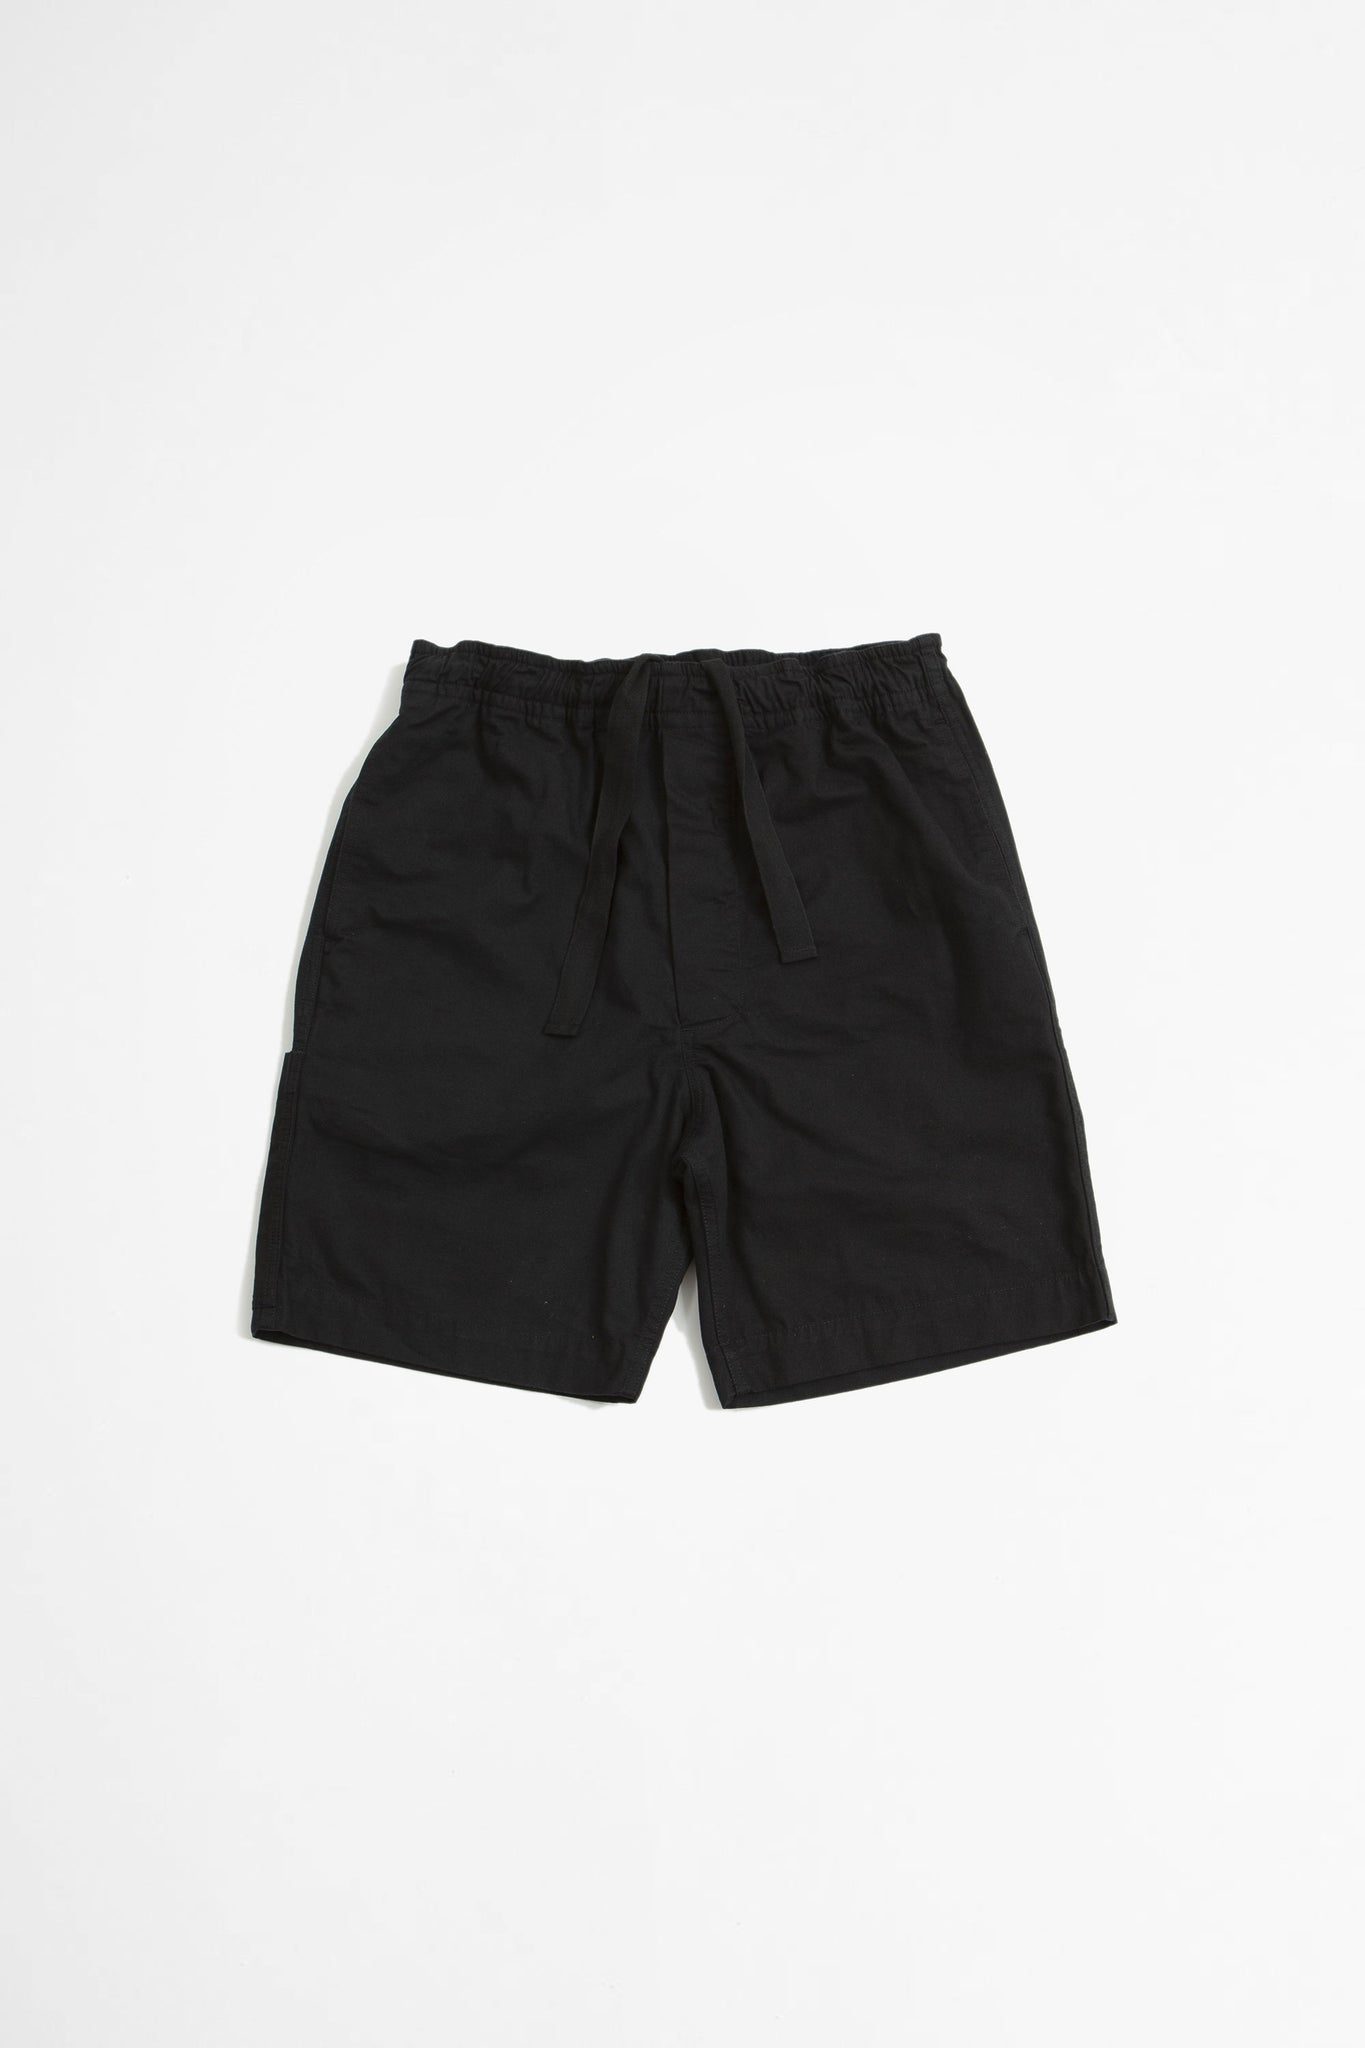 Pull up shorts compact broken drill black